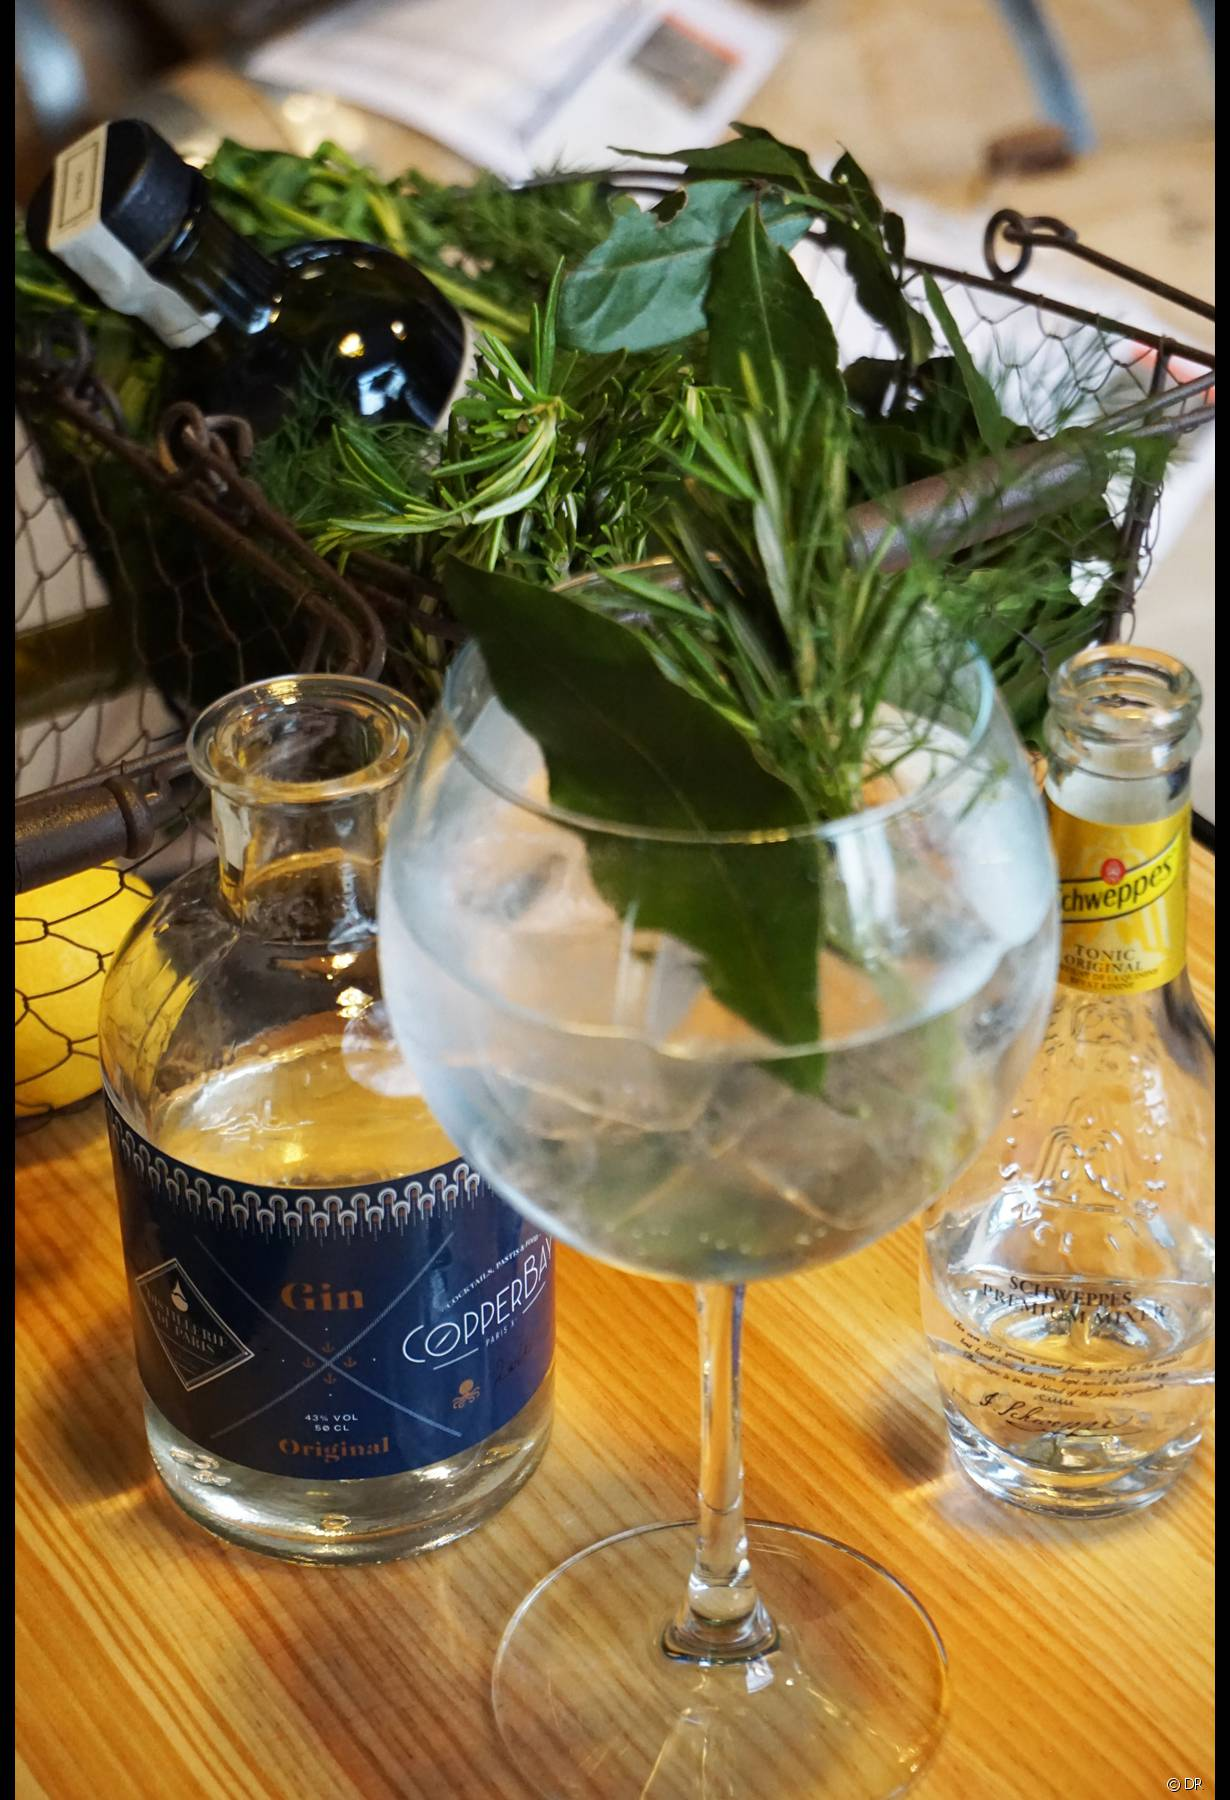 Les gins du CopperBay - Photo 2